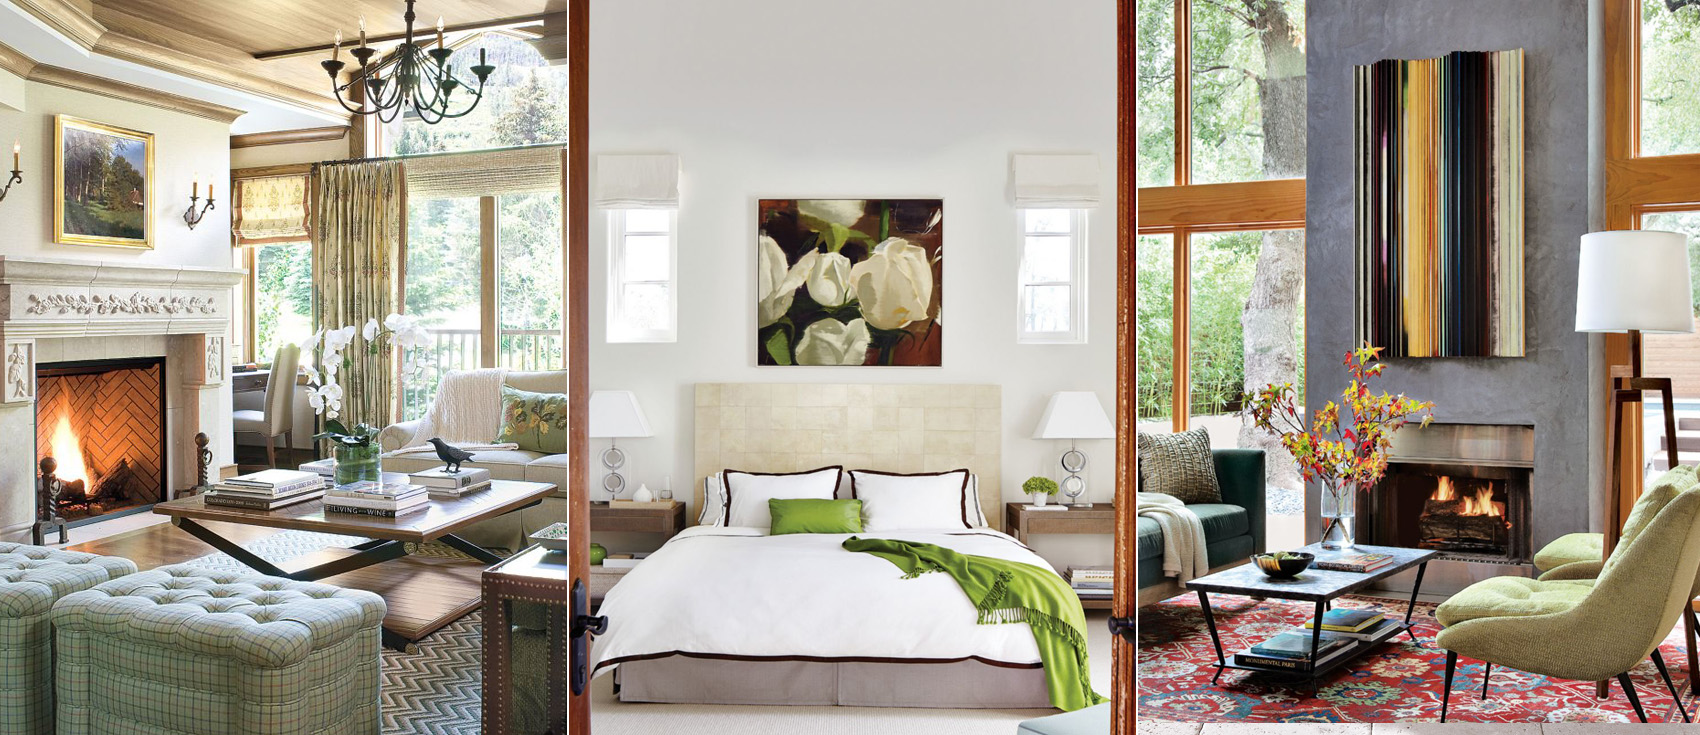 Green Decor | Decorating with Green